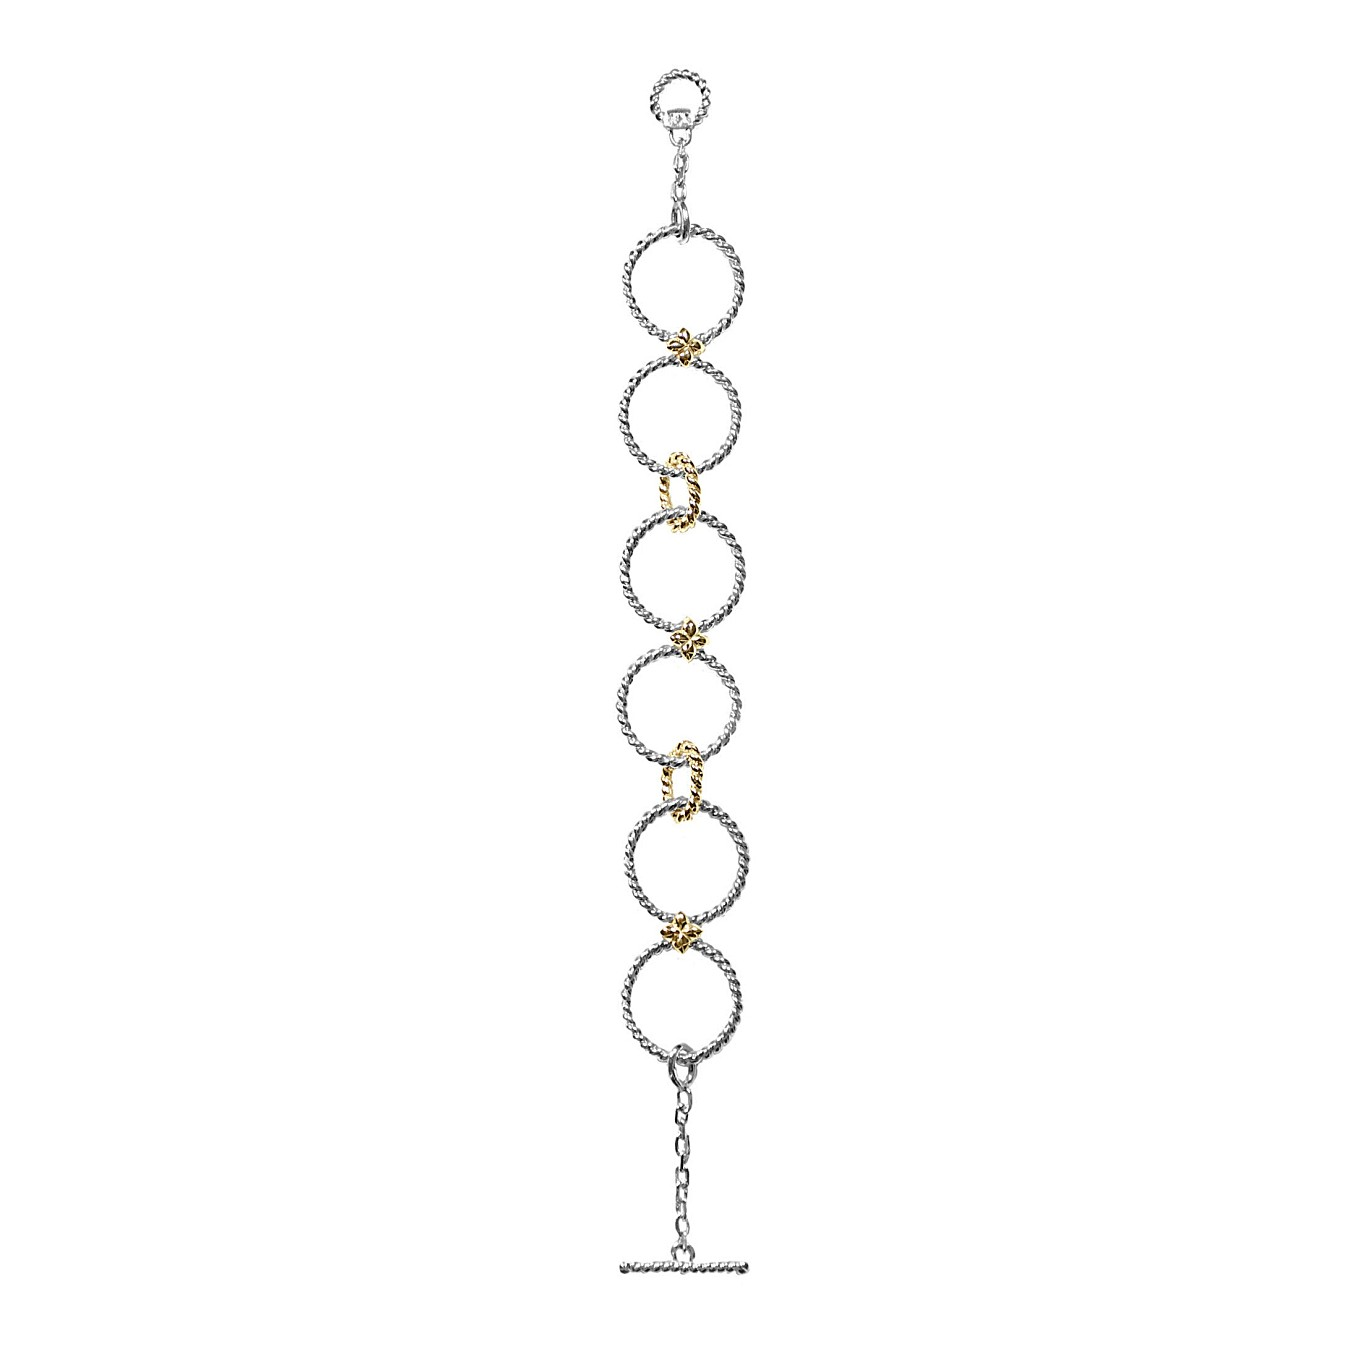 BRAID SEVILLA BRACELET IN STERLING & YELLOW GOLD